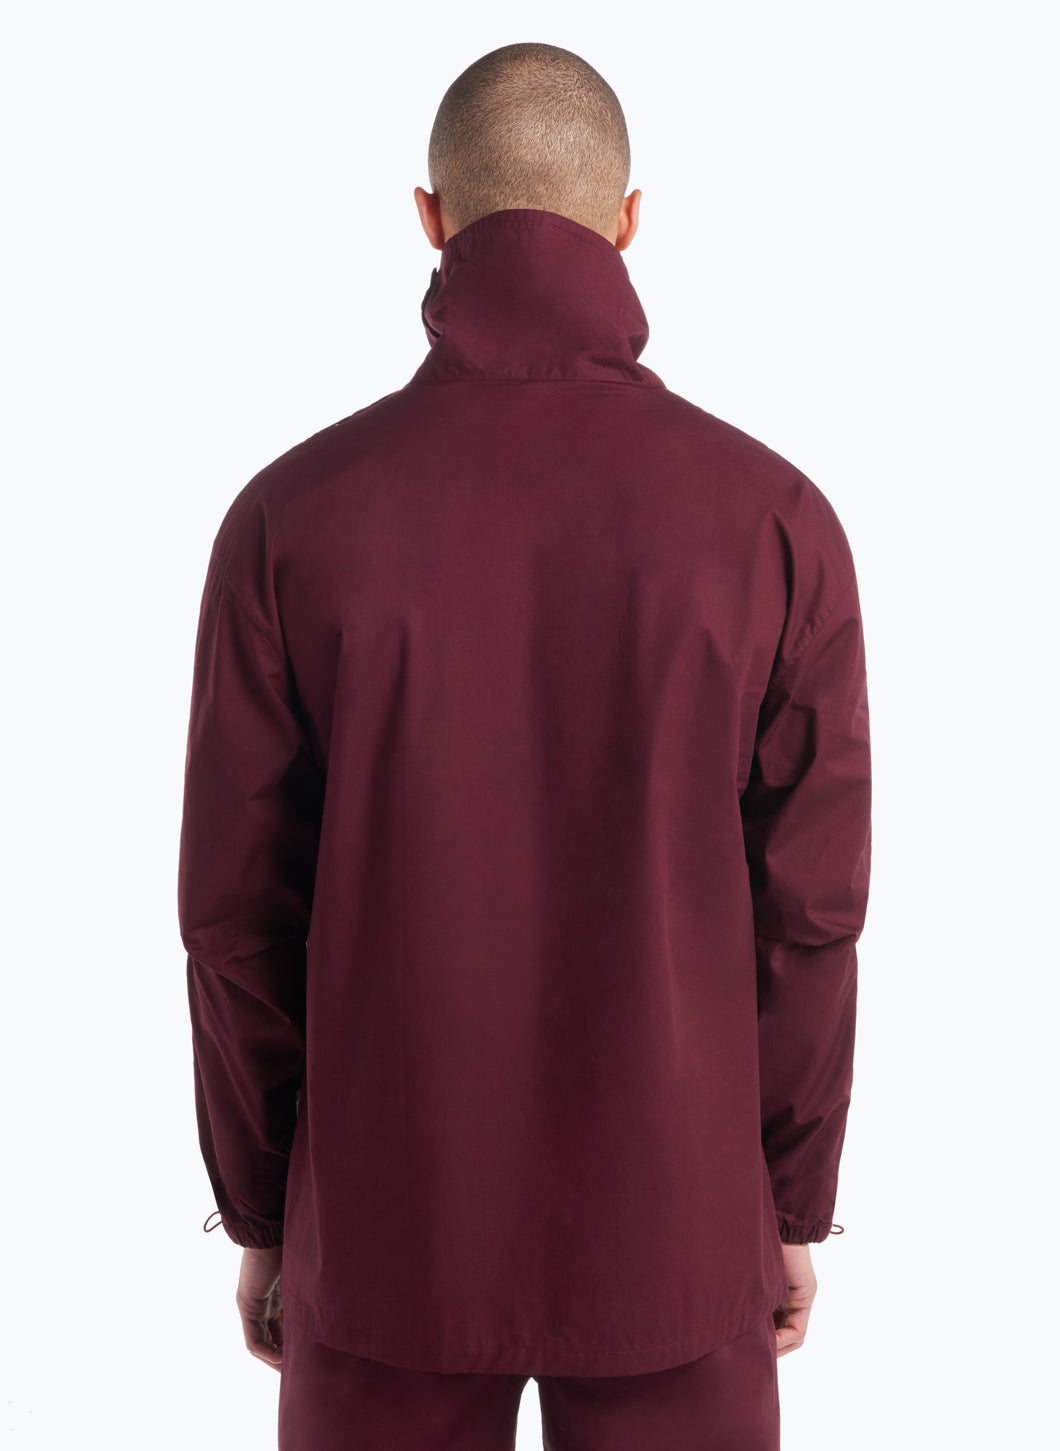 High Funnel Neck Sweatshirt with Side Buttons in Burgundy Poplin